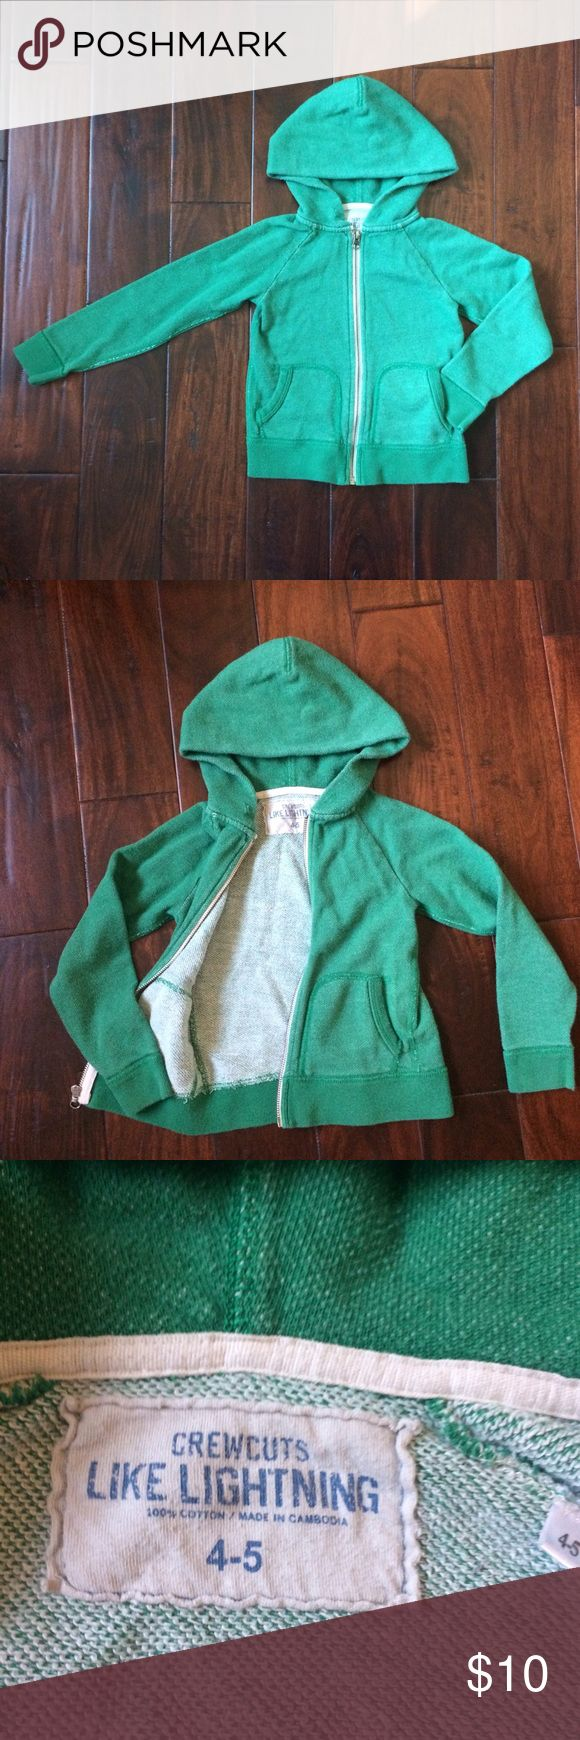 👦🏻•J. Crew crewcuts green zip up hoodie•4-5yrs Awesome sweatshirt. Has an intentionally worn/faded look. Please note pictures 3 and 4 for close up look of sweatshirt fabric. Good condition. J. Crew Shirts & Tops Sweatshirts & Hoodies